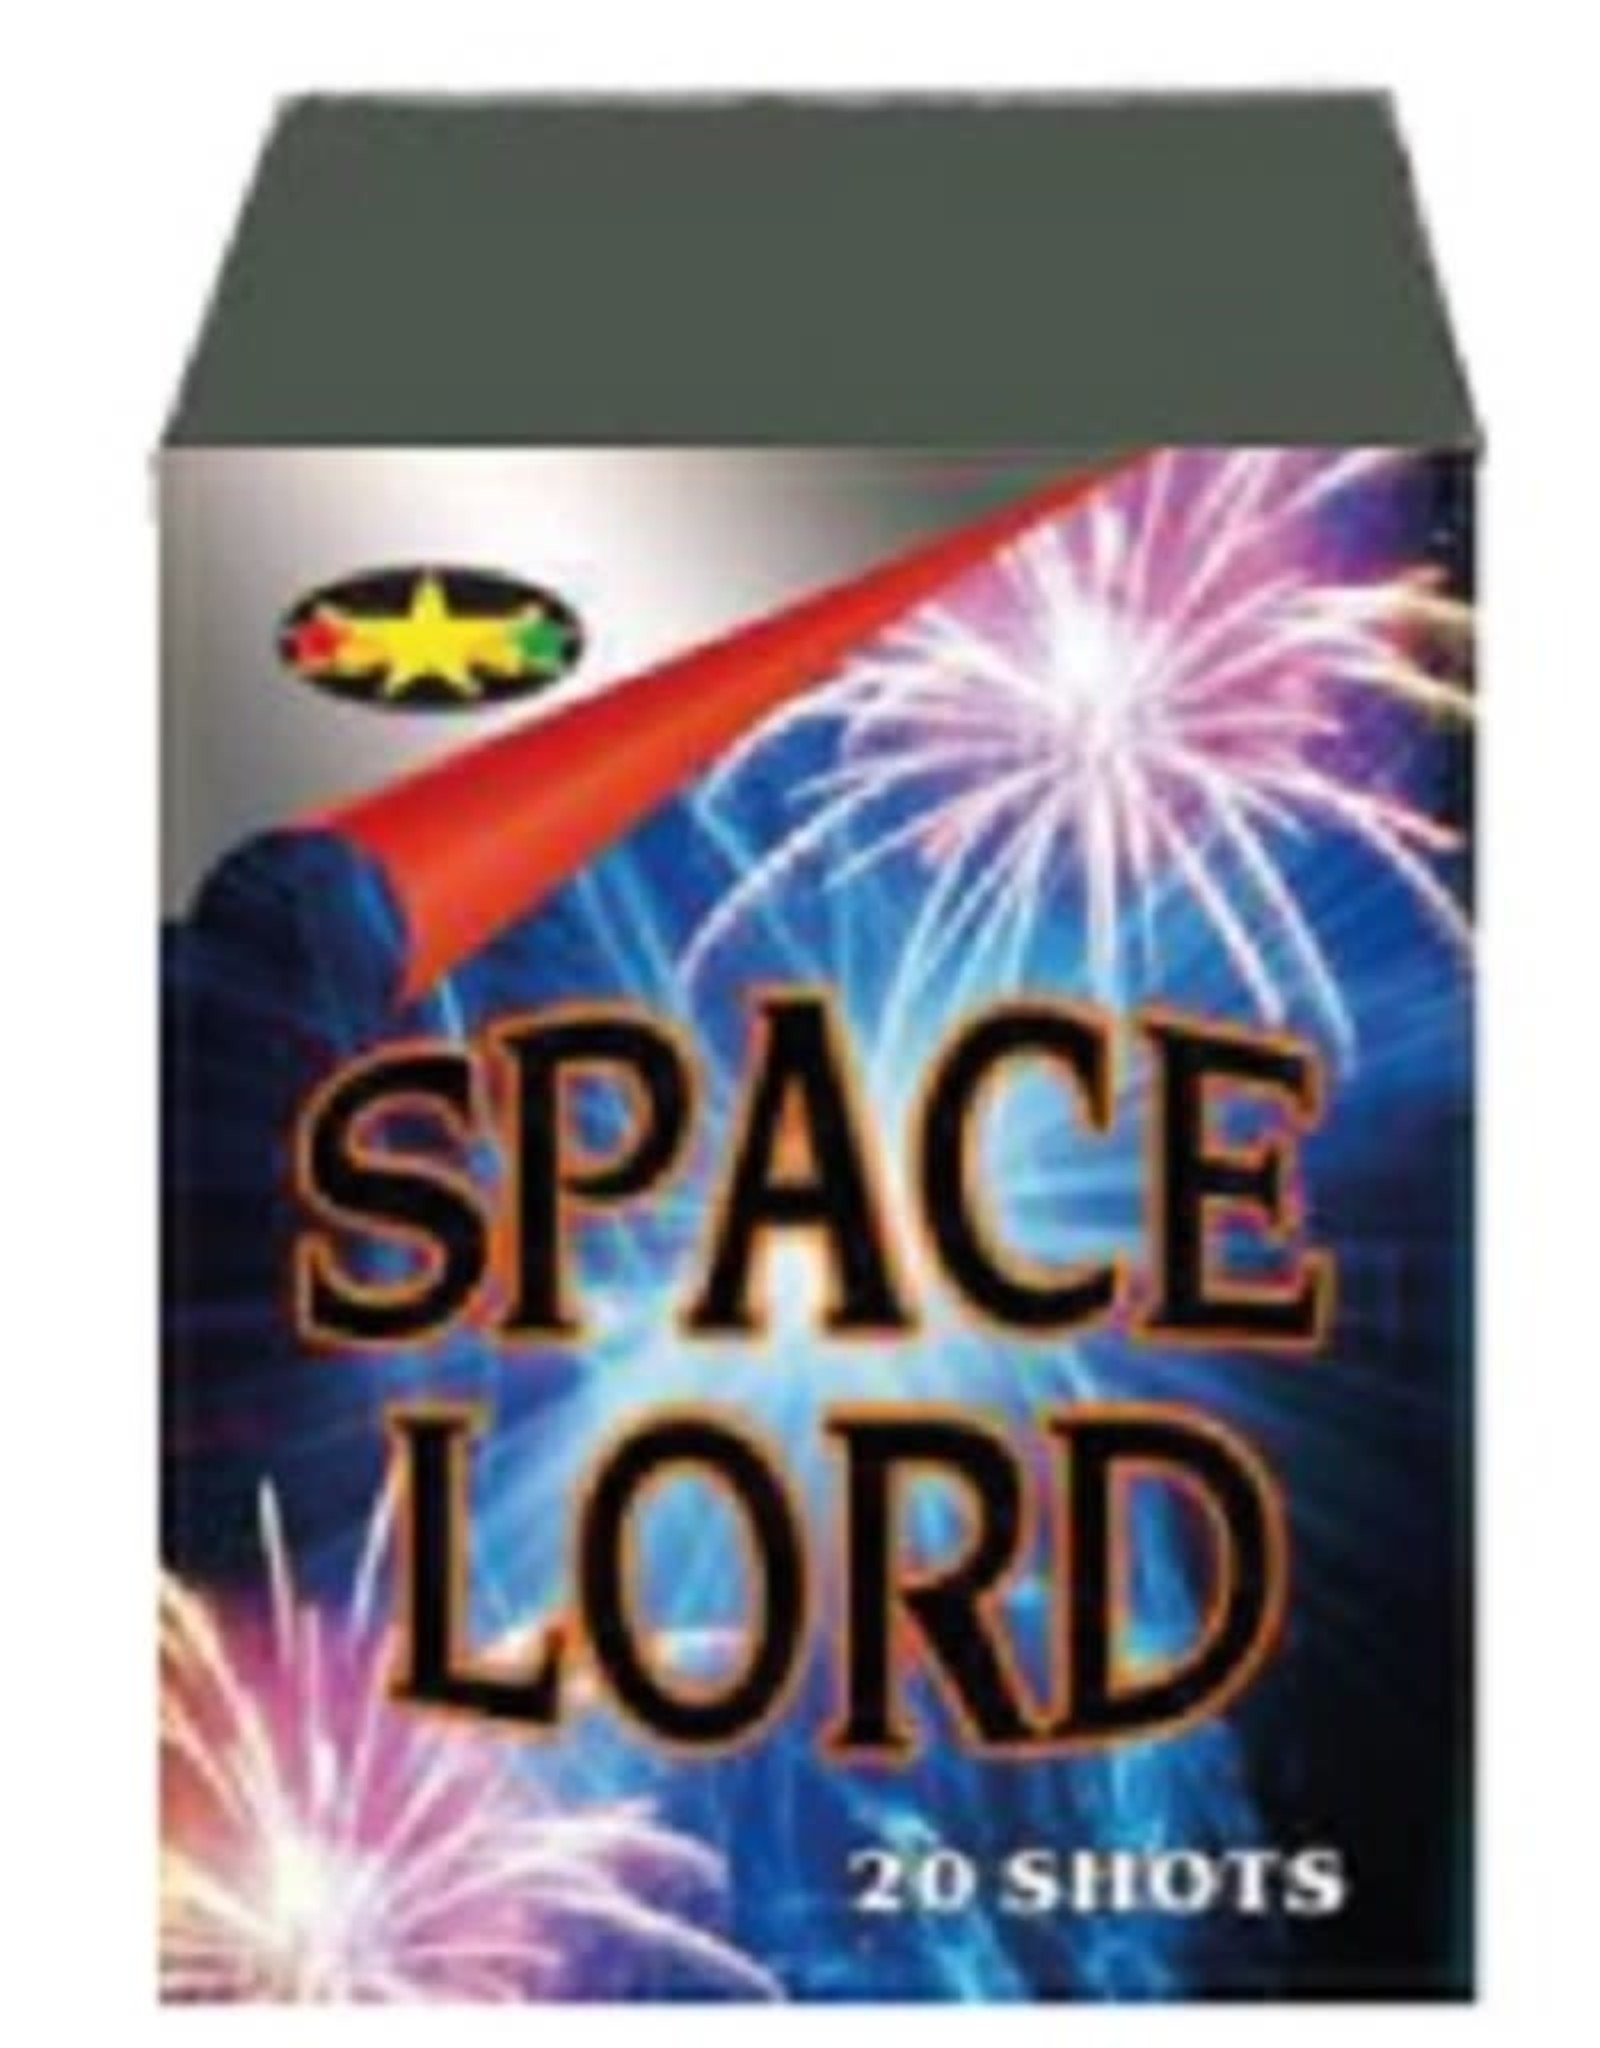 TRISTAR Spaces  lord 20 shot